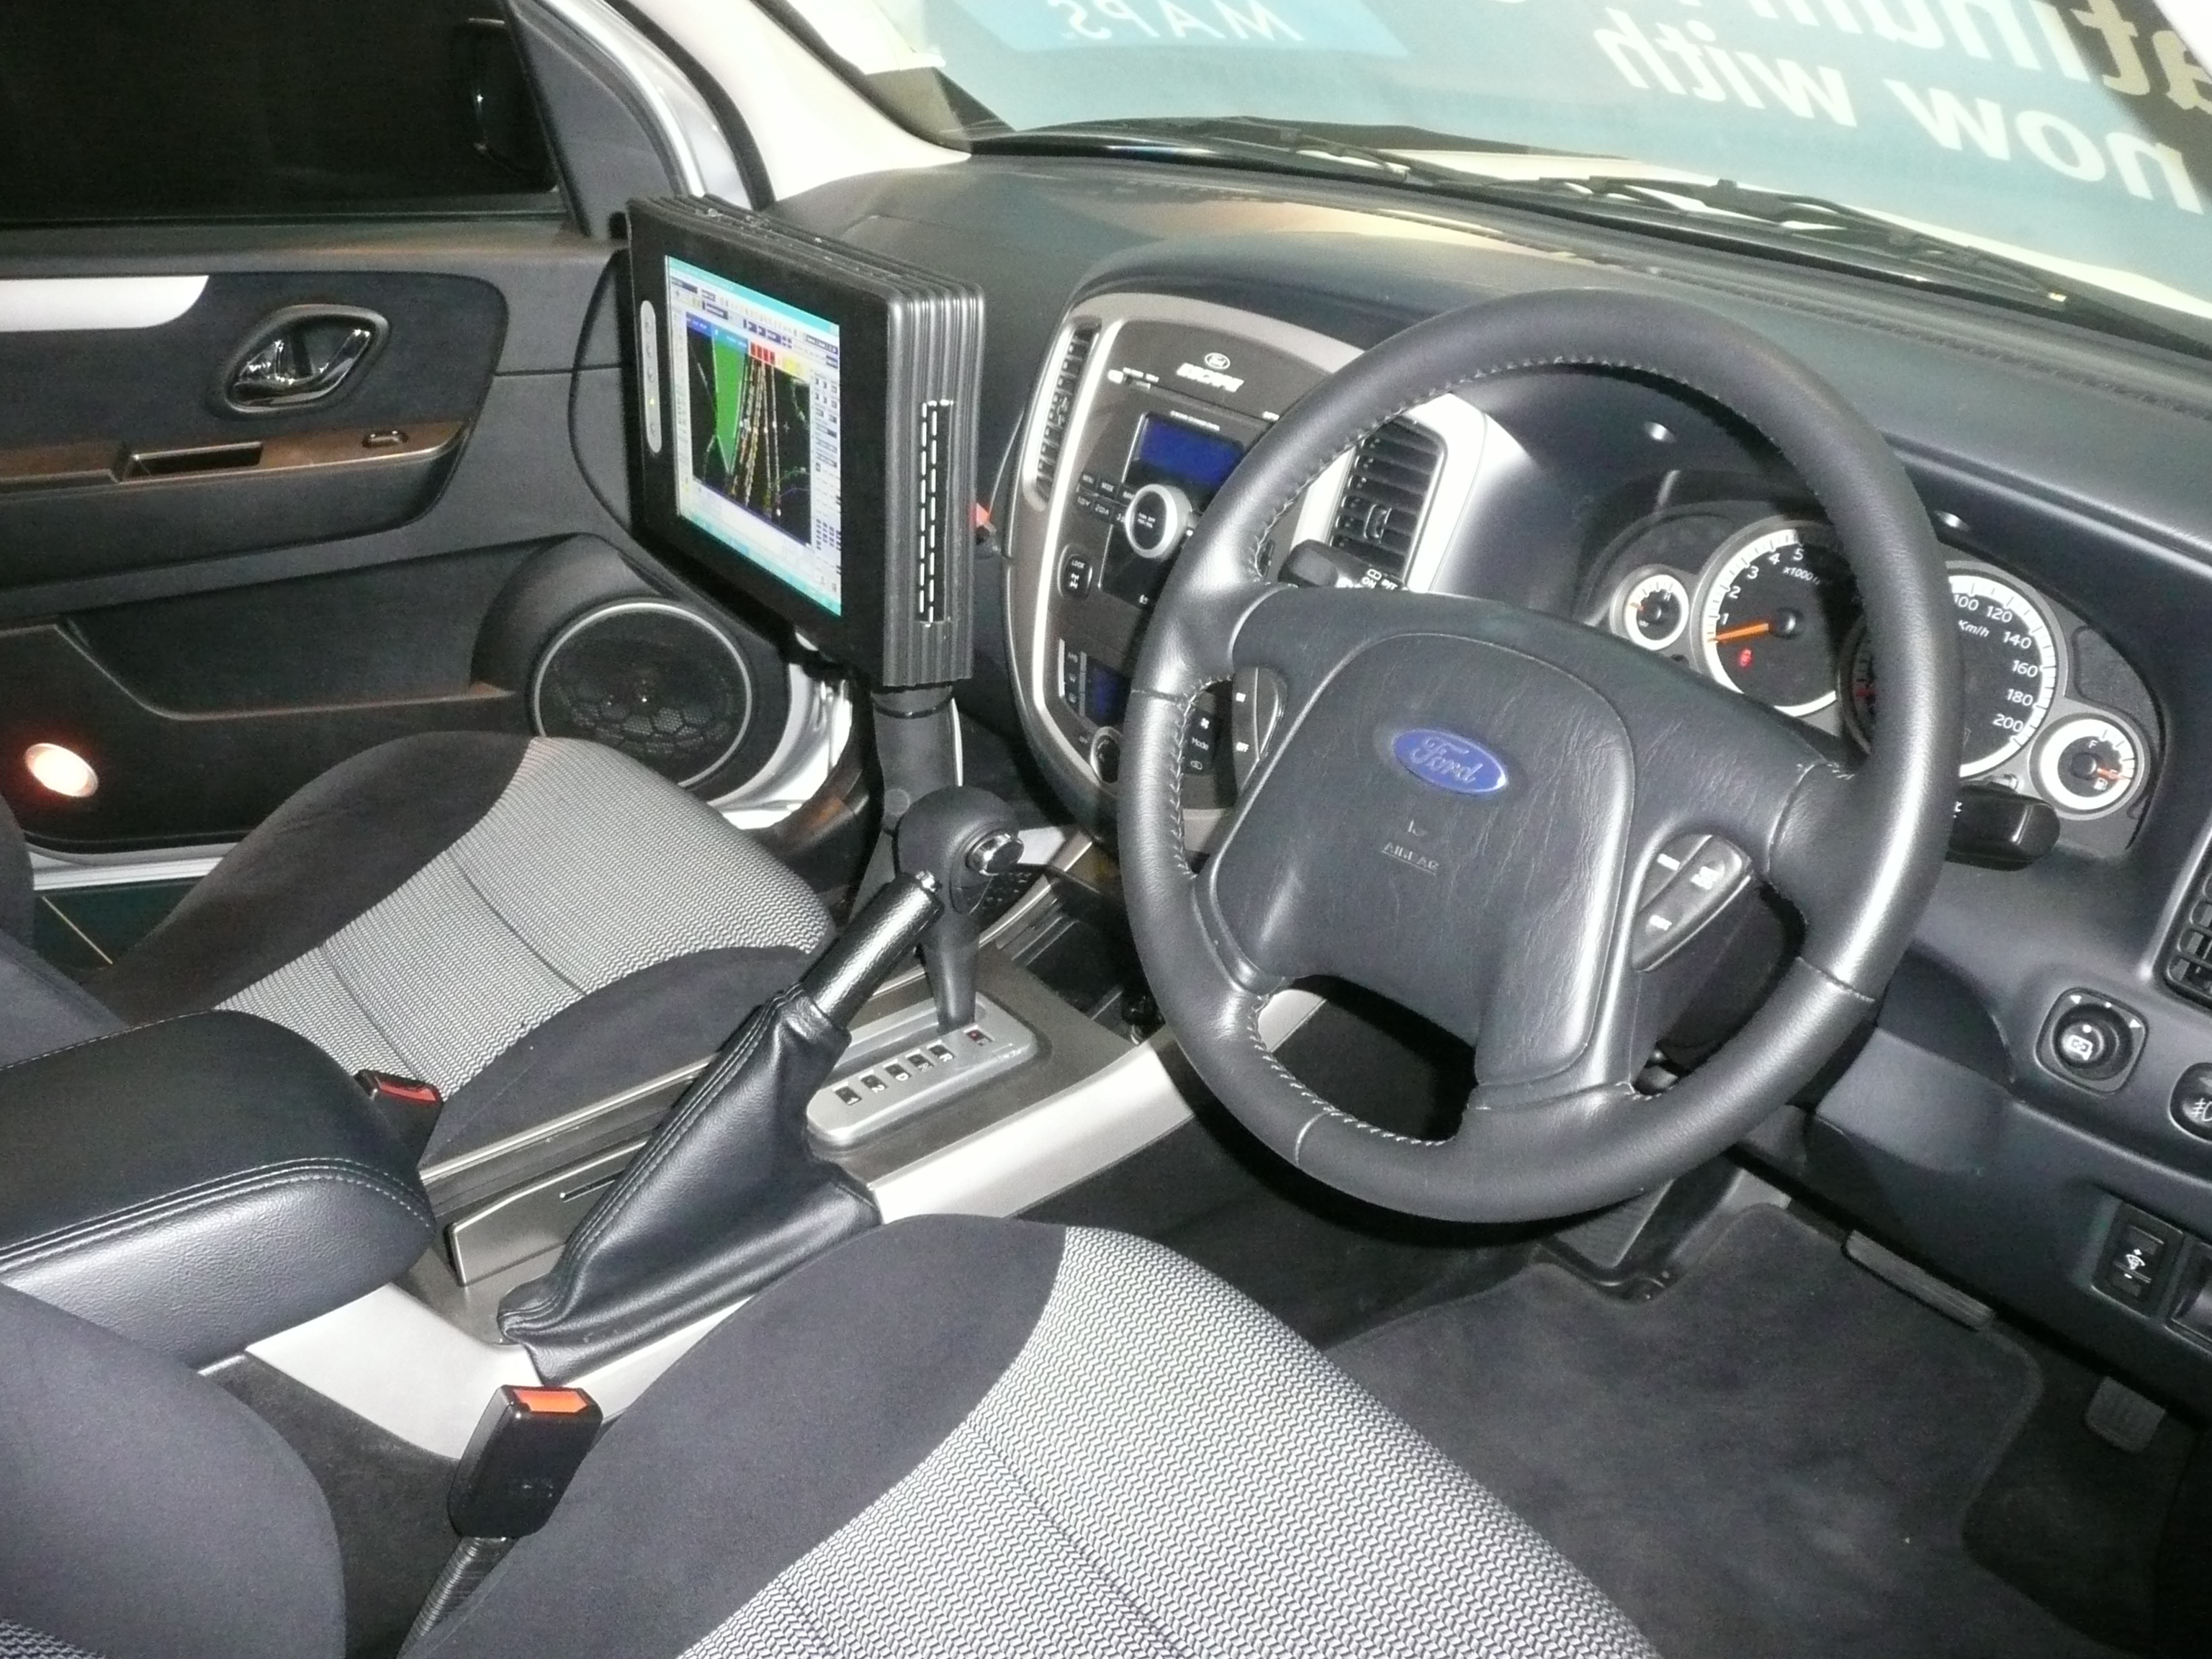 Ford Explorer Interior Dimensions 2018 2019 2020 Ford Cars